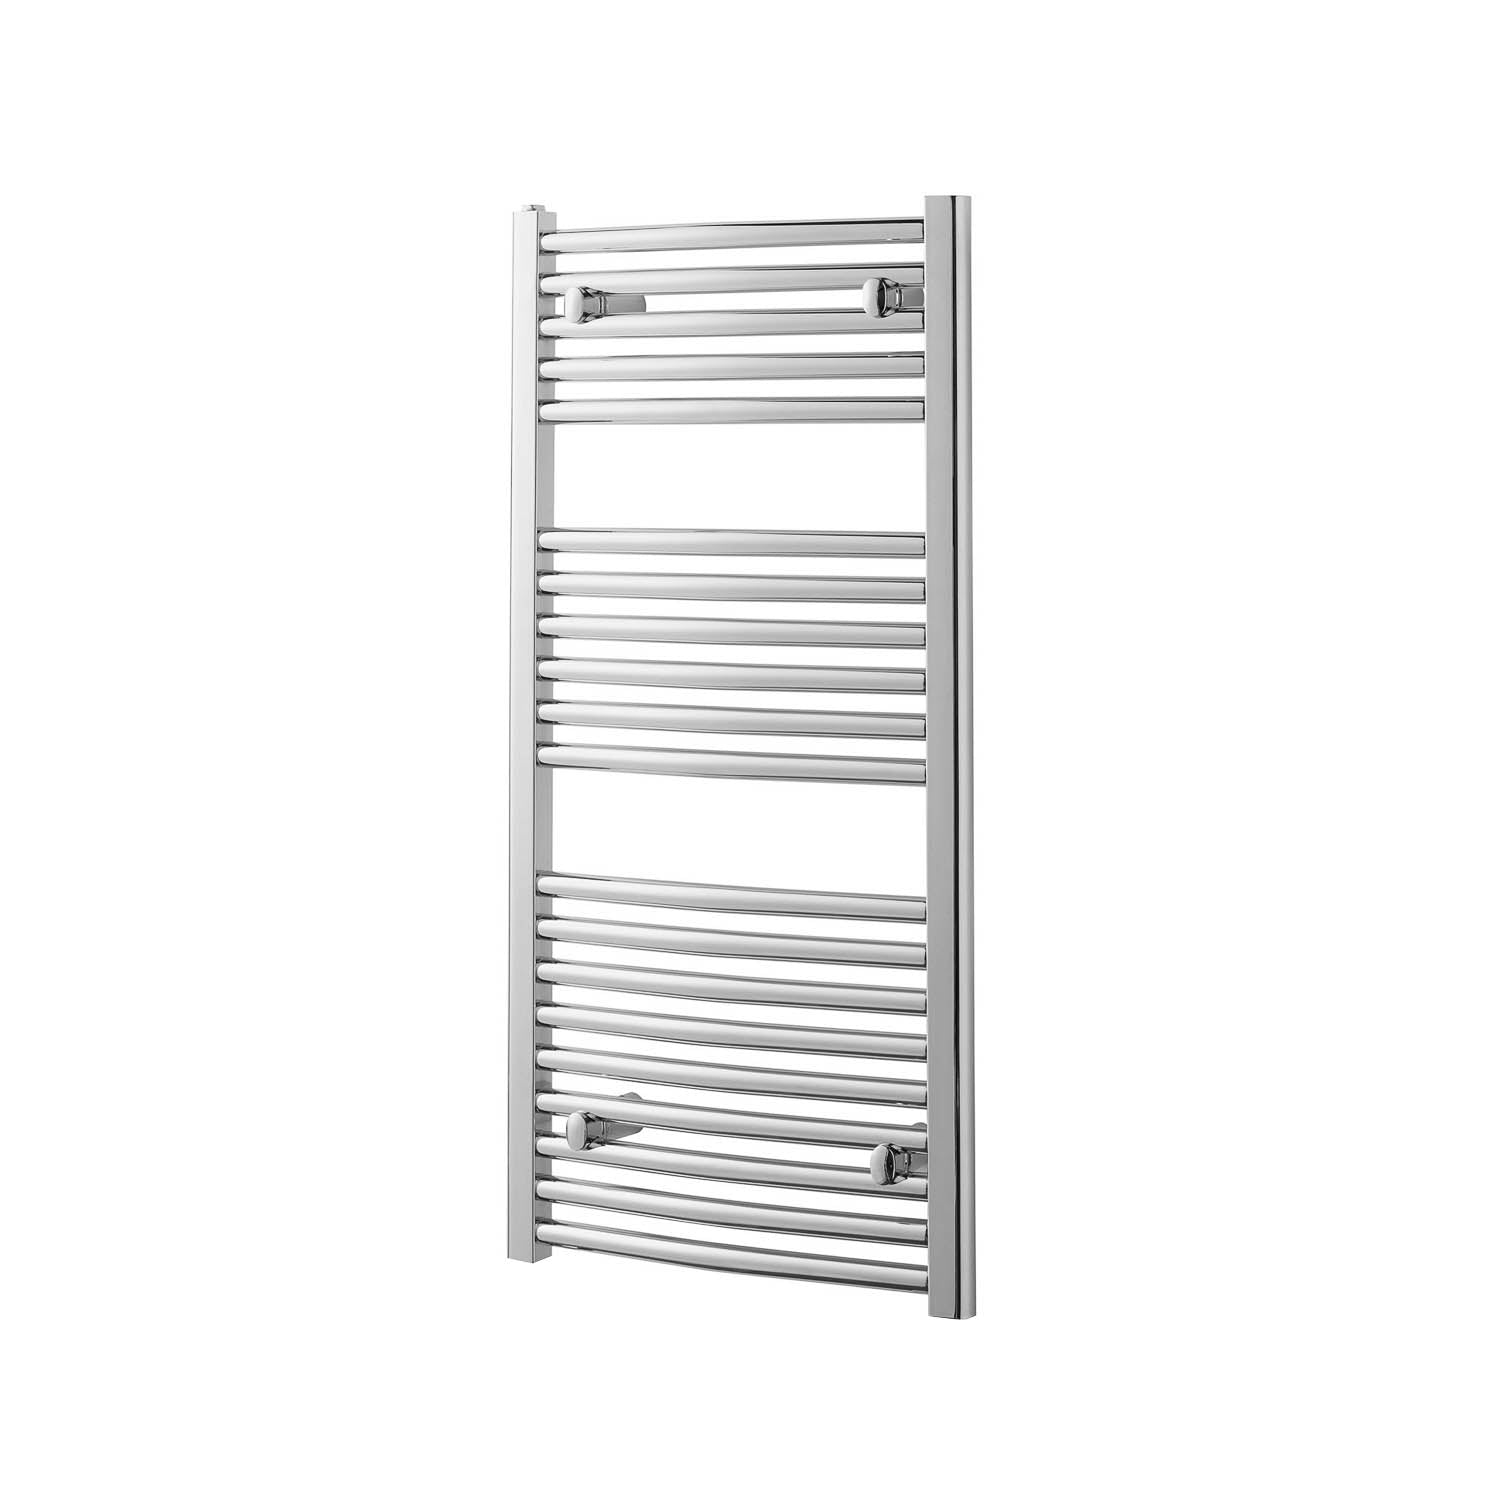 1200x500mm Modale Anti-Scald Towel Rail with a chrome finish on a white background